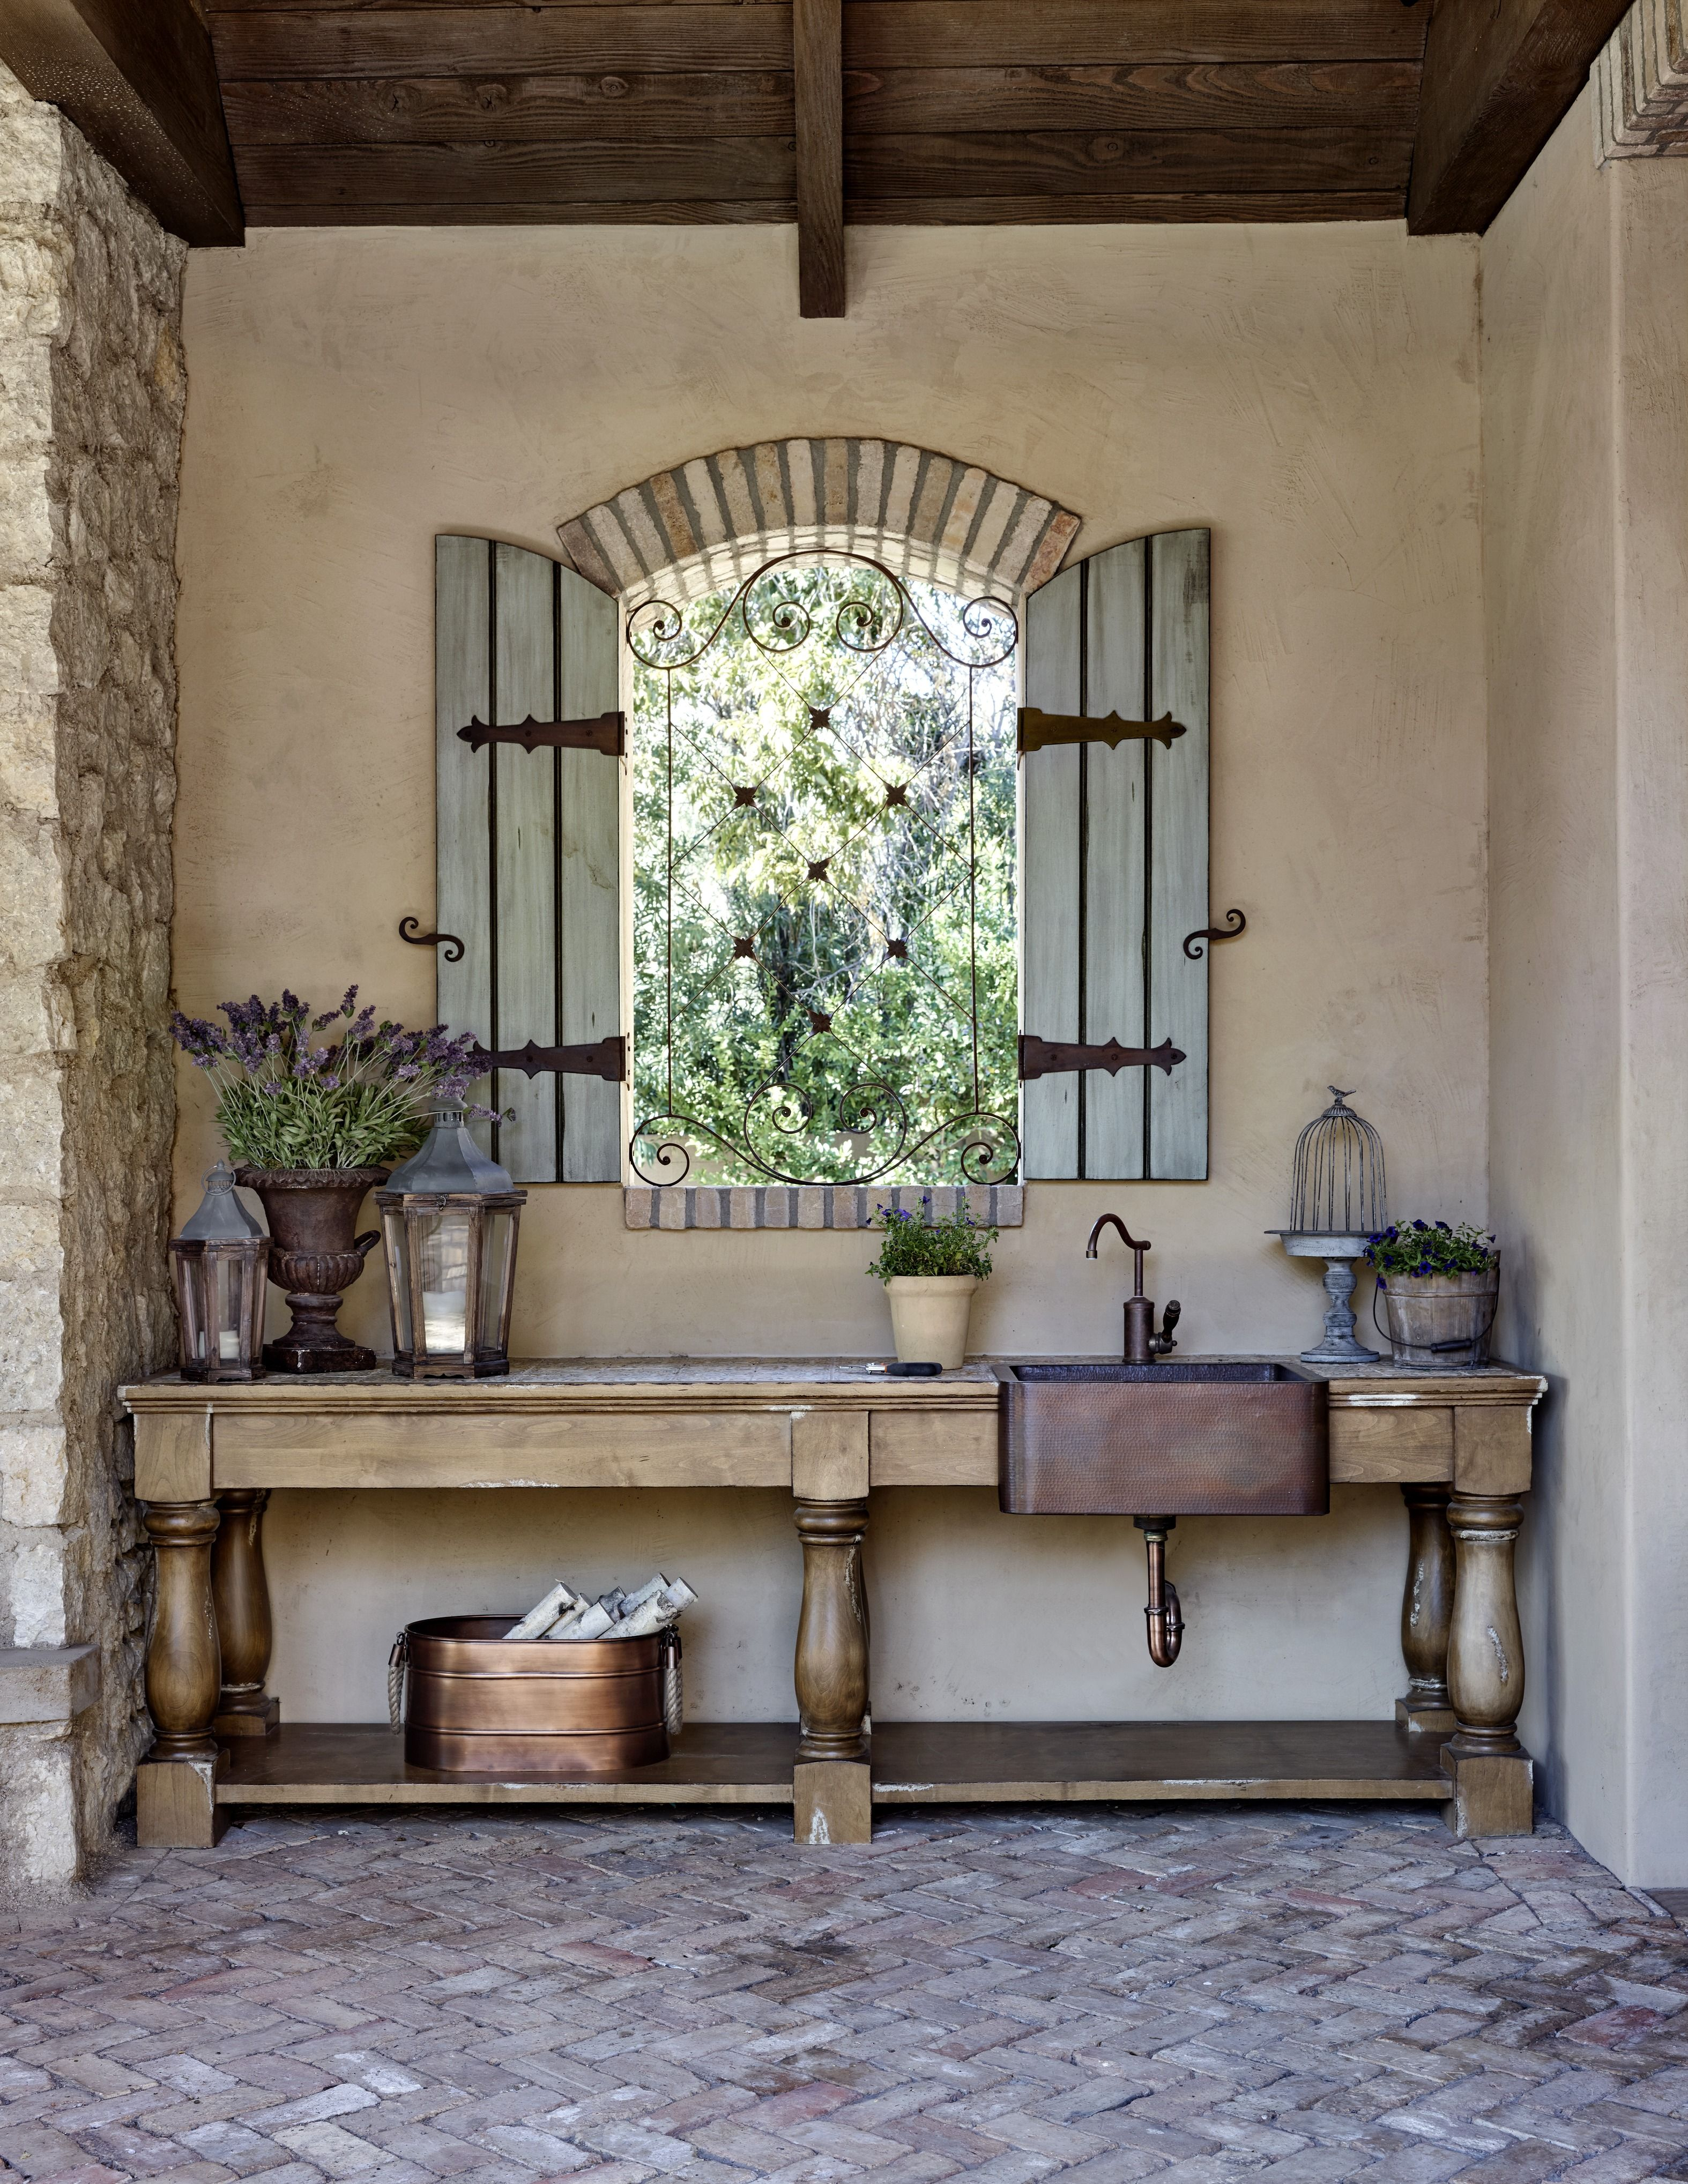 Timeless Elegance in a Storied Arizona Home | French exterior ... on farmhouse architectural details, farmhouse building designs, farmhouse bathroom sinks and countertops, farmhouse design elements, farmhouse patio design, modern farmhouse design, farmhouse fireplace design, modern country design, farmhouse kitchen, farmhouse pool design, farmhouse landscaping, farmhouse library, parisian home design, farmhouse bathroom remodeling, farmhouse architect, farmhouse ceiling designs, farmhouse vintage finds, farmhouse exteriors, farmhouse roof design, farmhouse stair design,